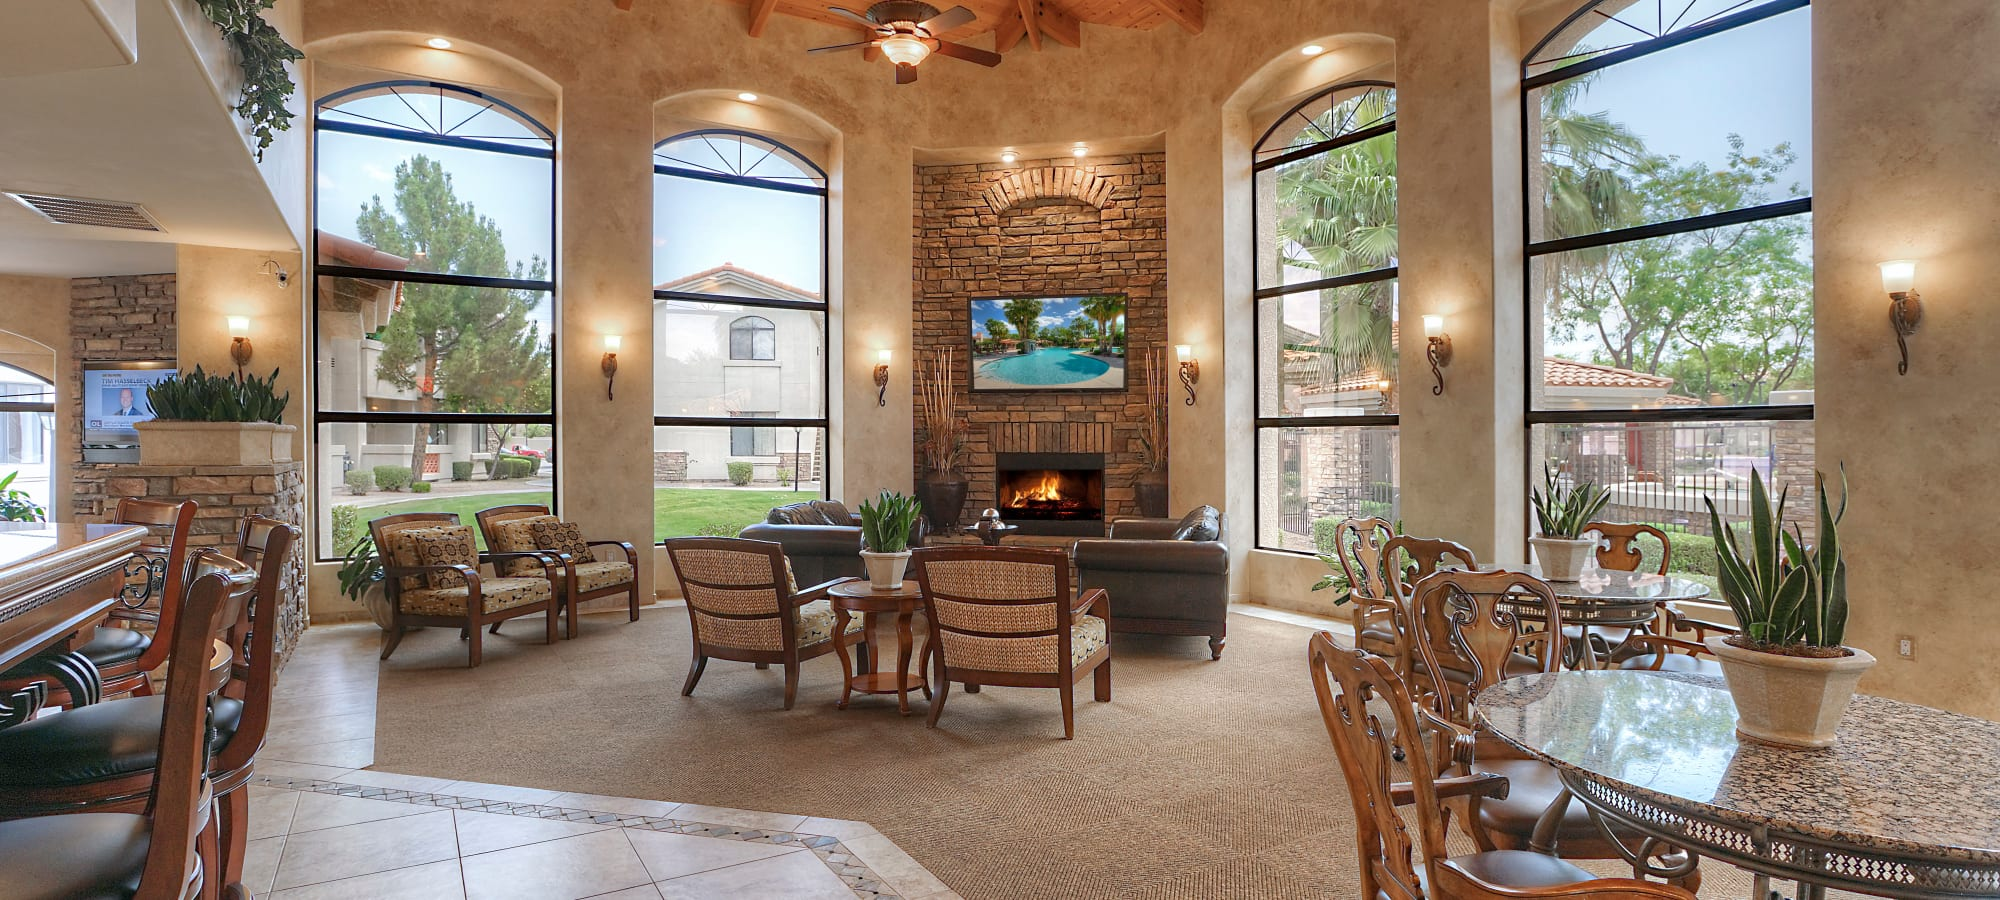 Comfortable clubhouse setting with seating and TVs at San Palacio in Chandler, Arizona